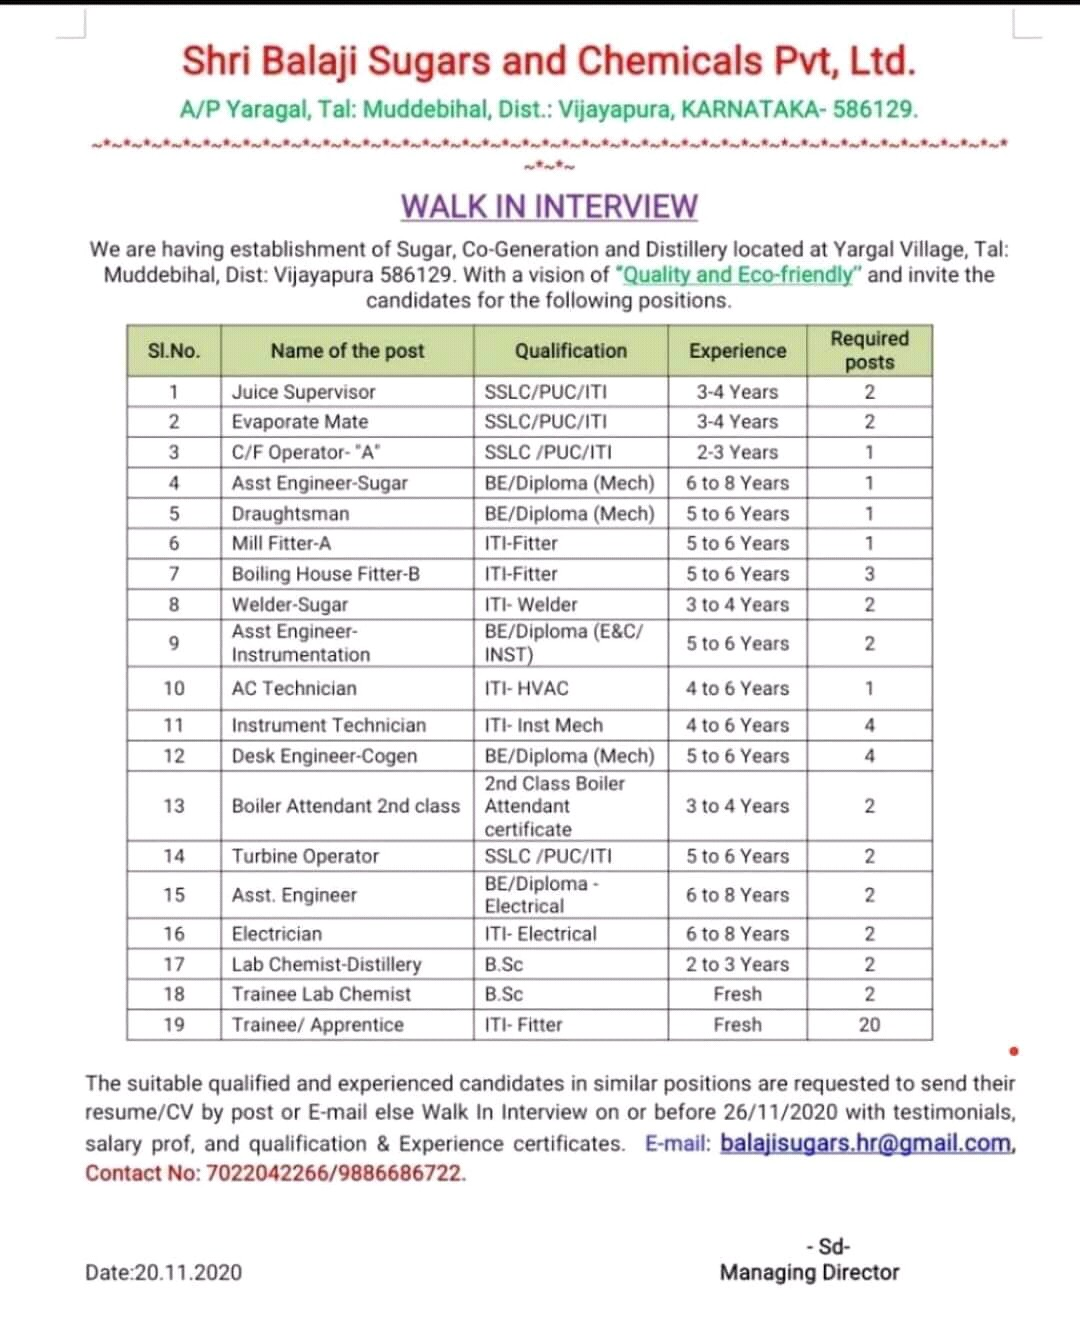 Shri Balaji Sugars and Chemicals Pvt Ltd Required ITI/ Diploma /BE/ B.Sc Fresher And Experience Candidates